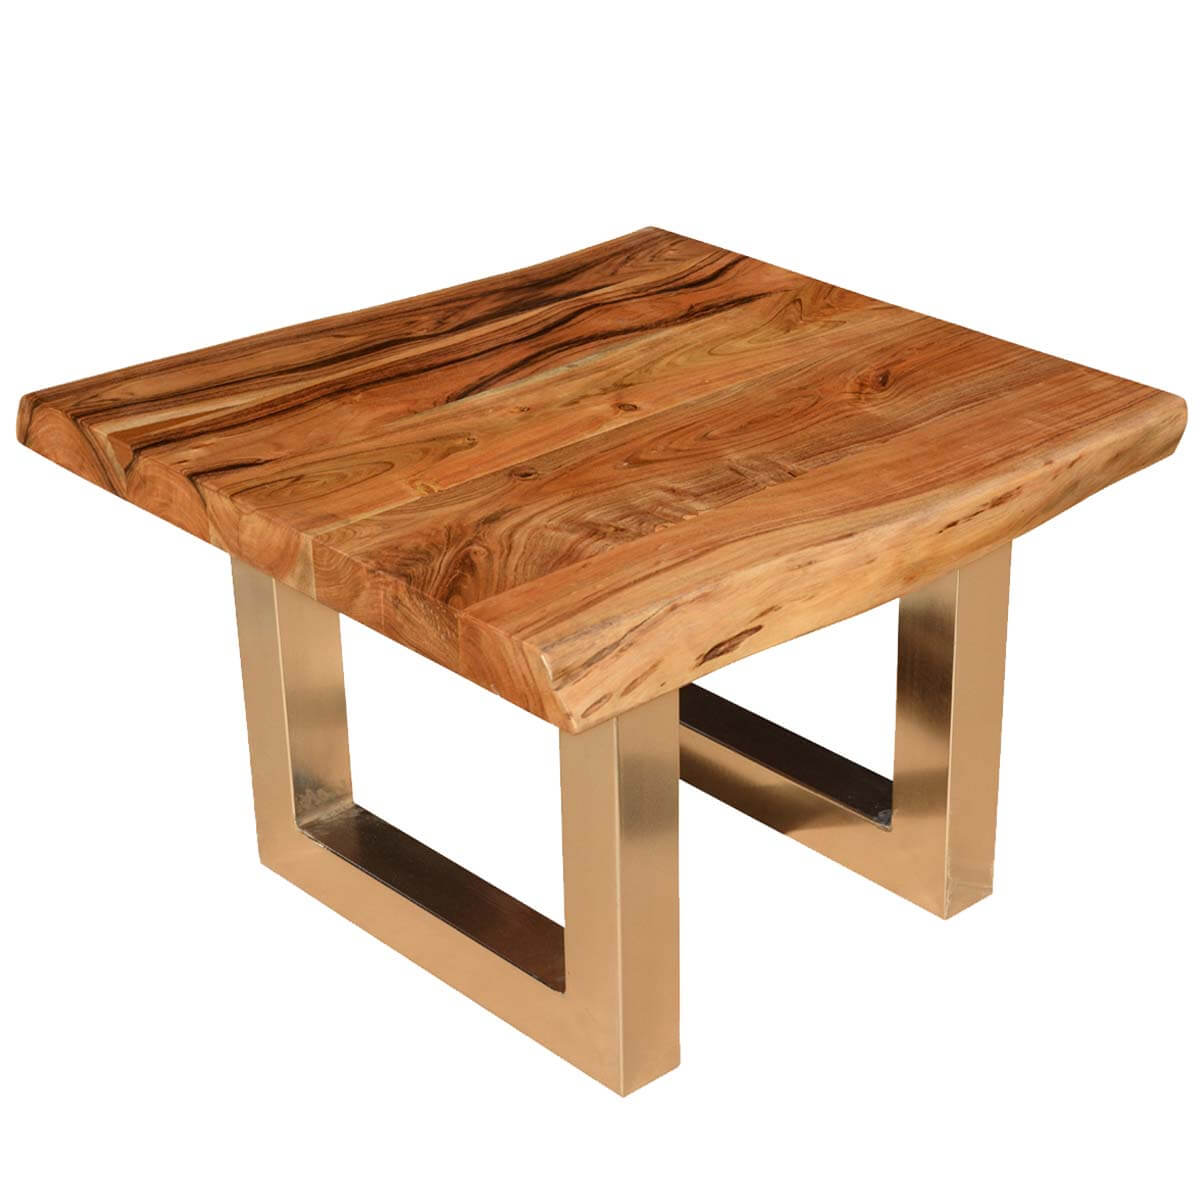 30 Live Edge Coffee Tables That Transform The Living Room: Live Edge Acacia Wood & Iron Contemporary Square Coffee Table